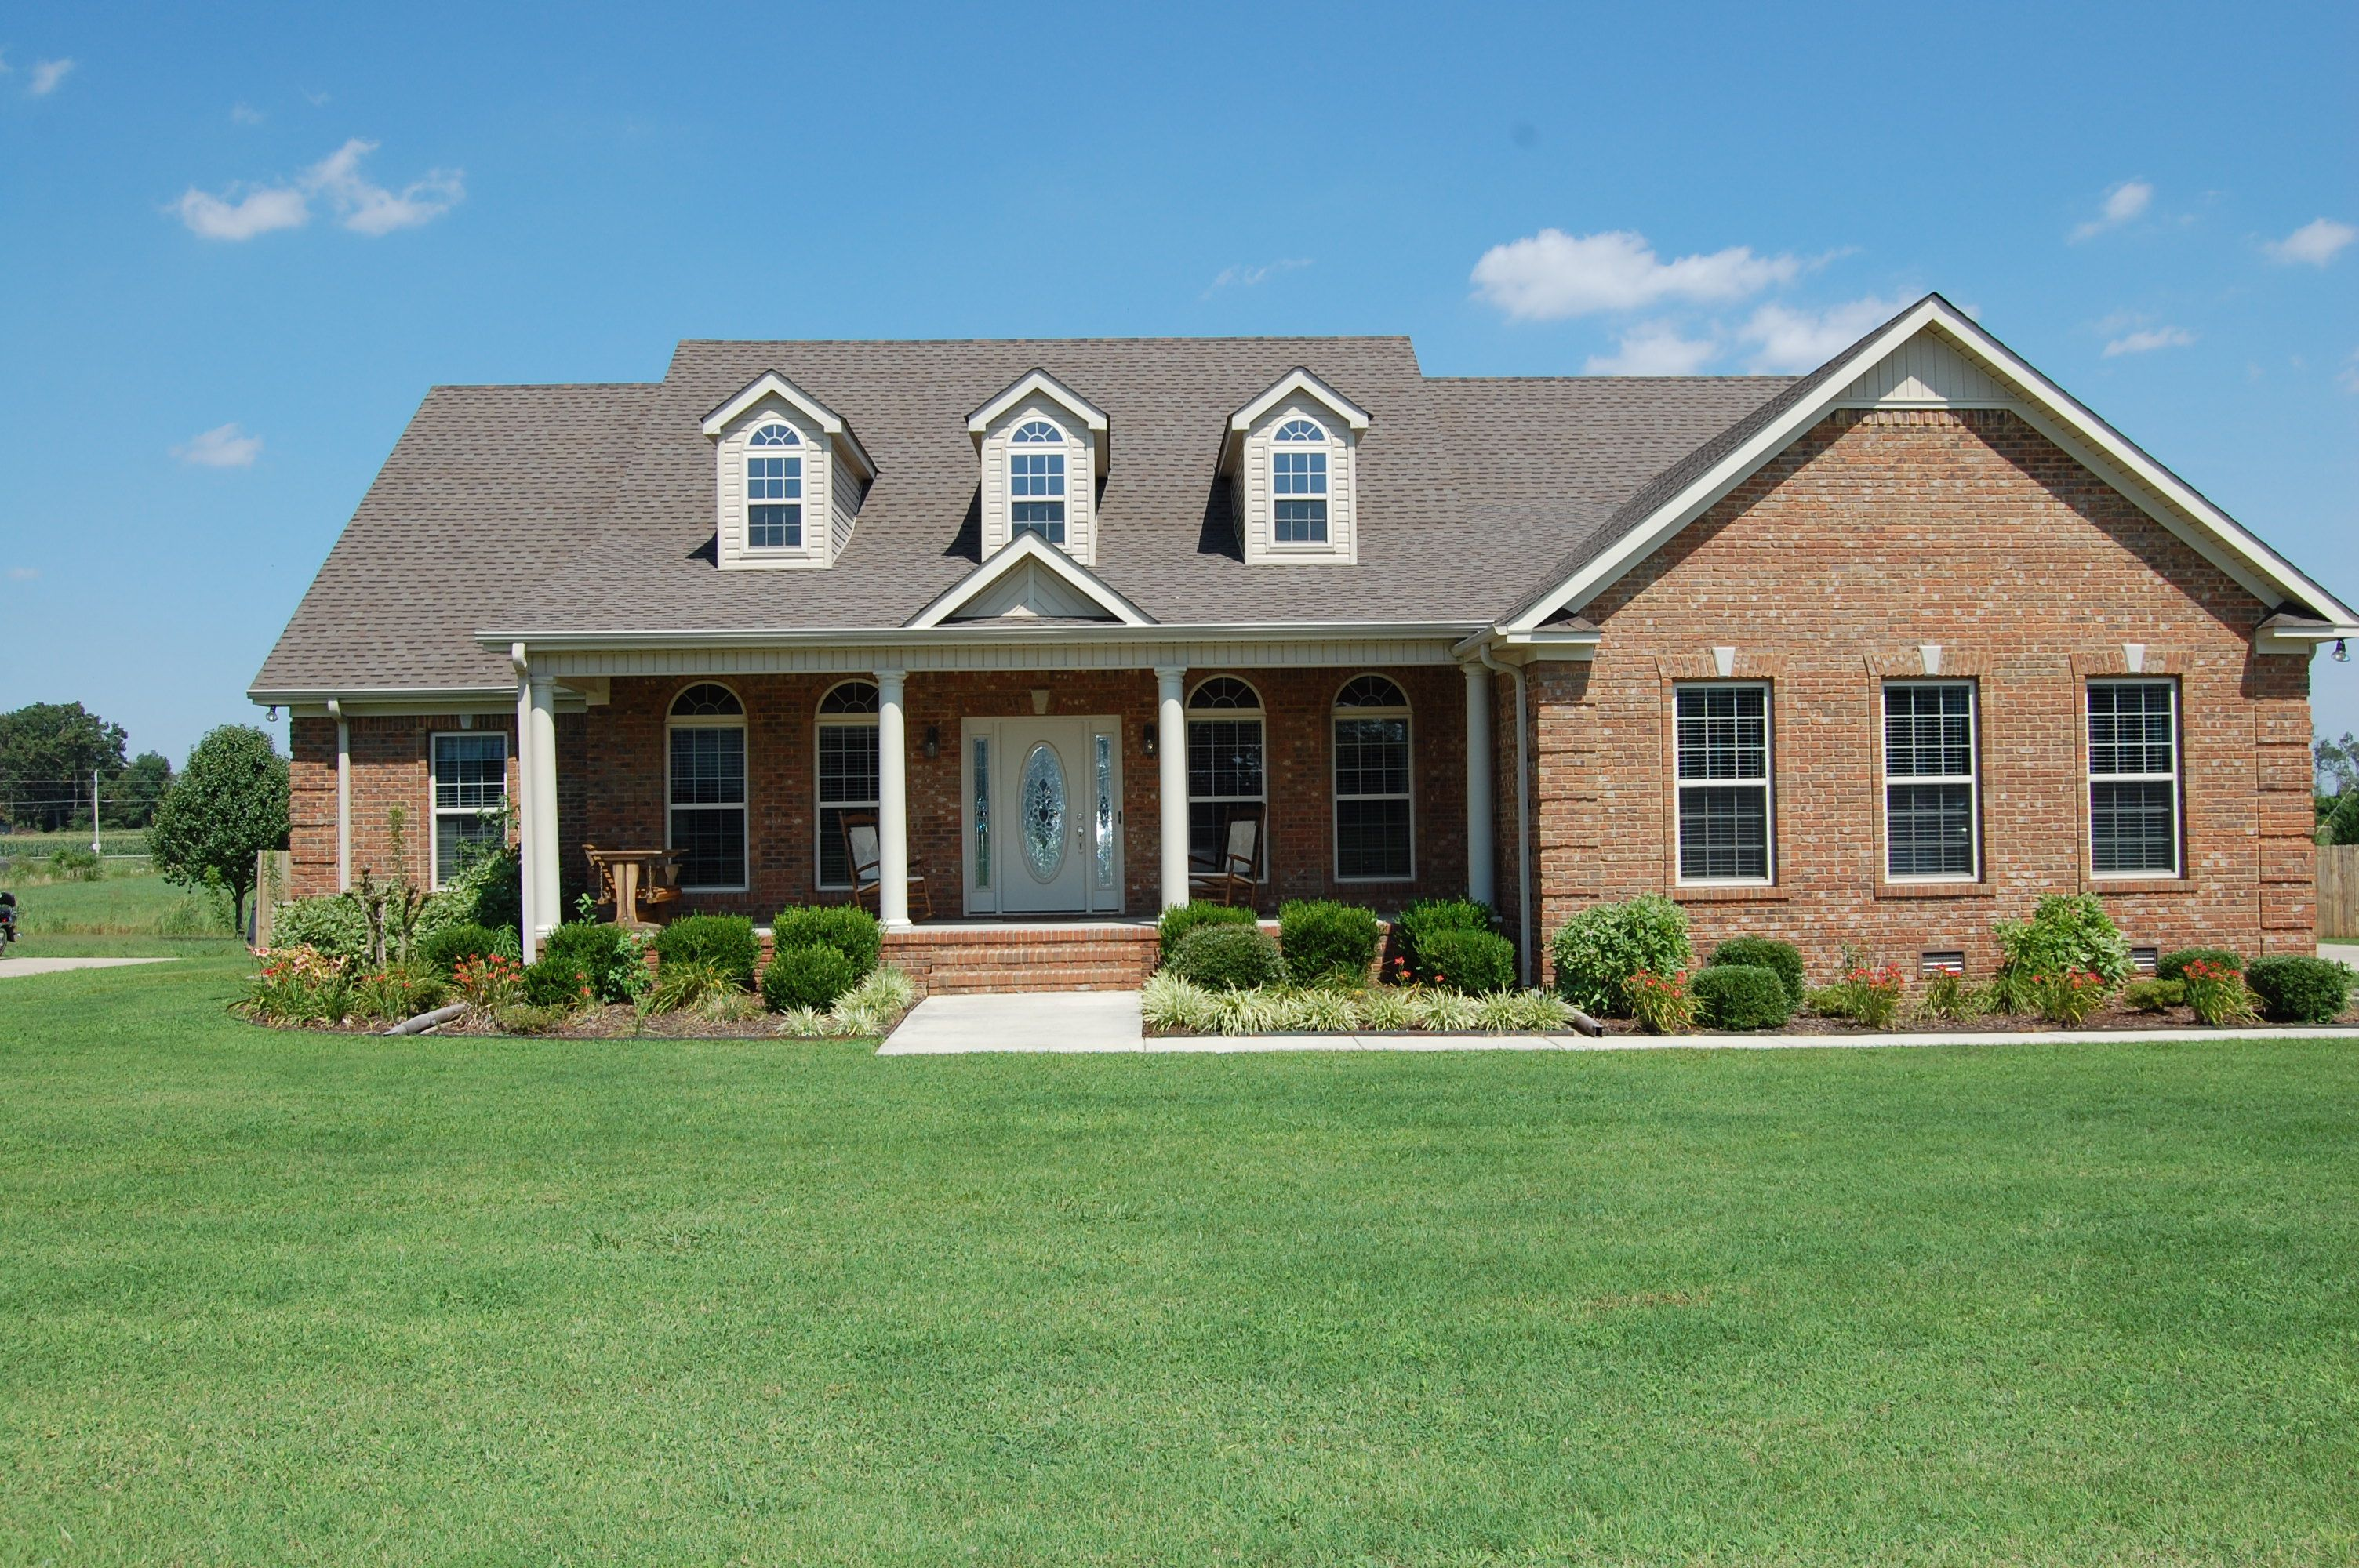 Beautiful Brick Homes Featured Home Beautiful Full Brick Home With Large Back Yard House With Porch House Home